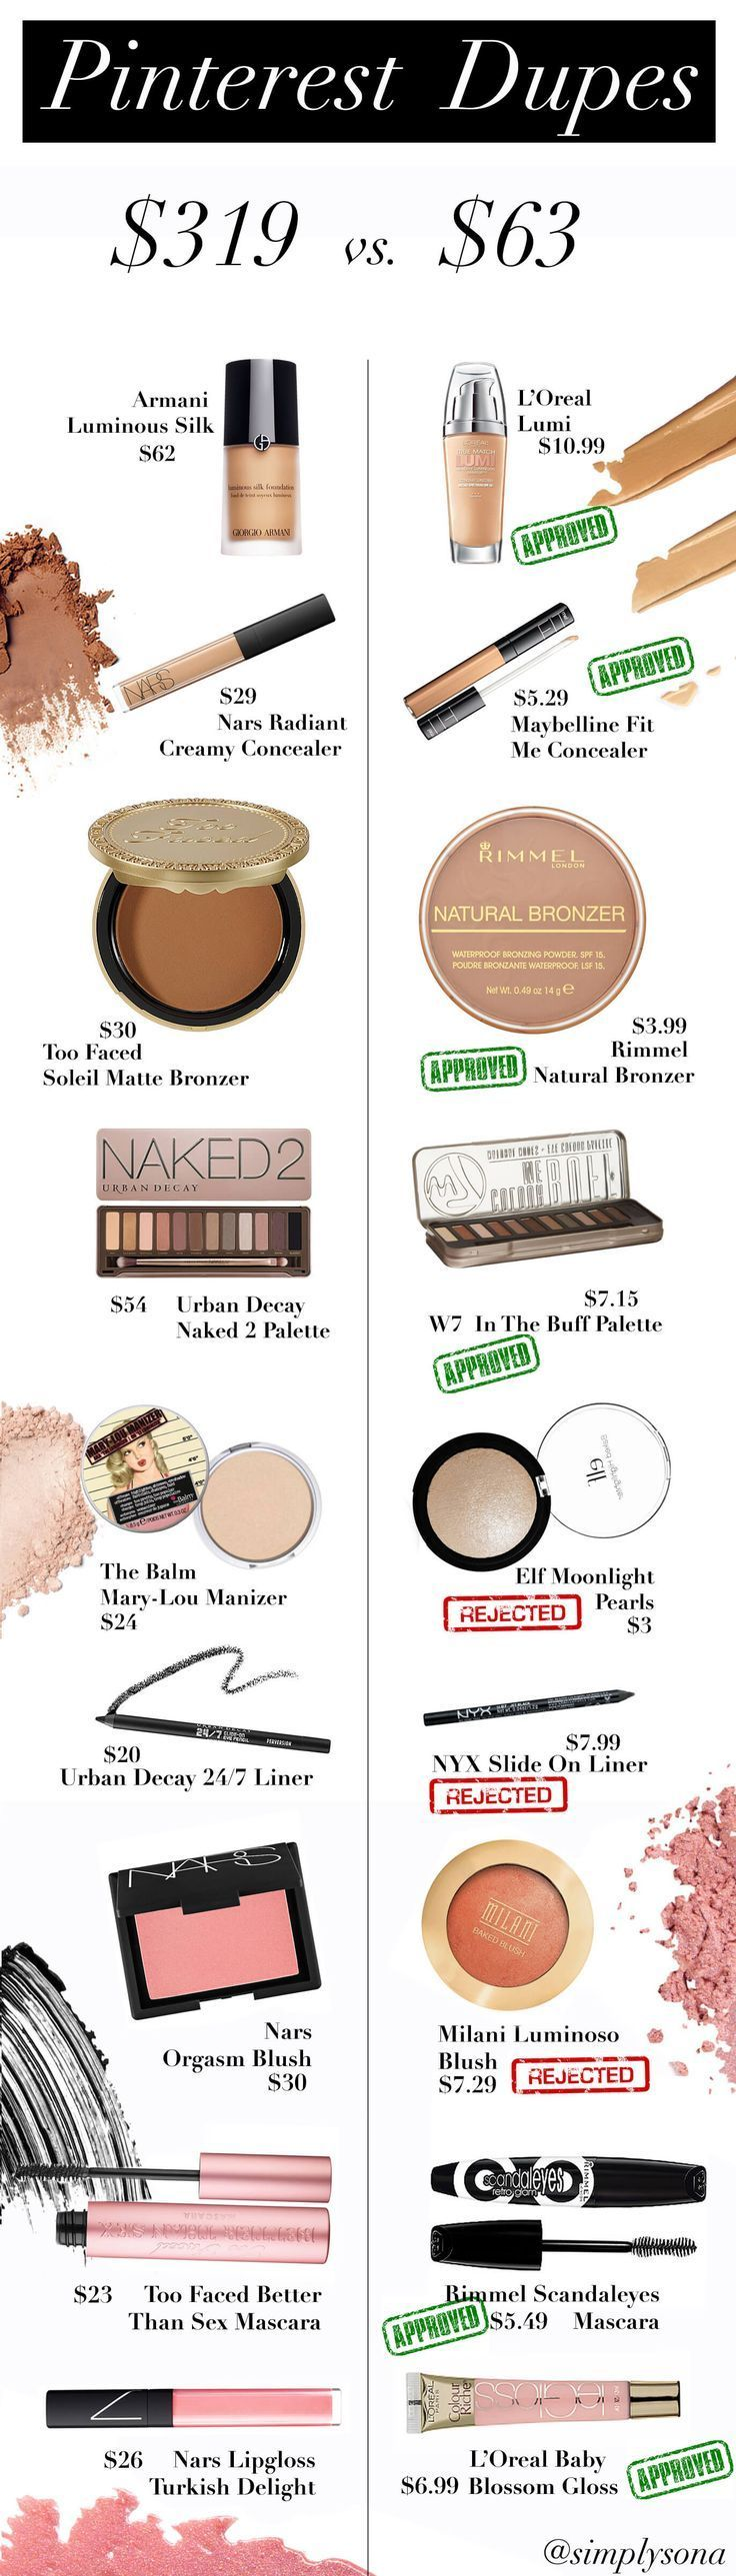 Are Pinterest Dupes Worth The Hype